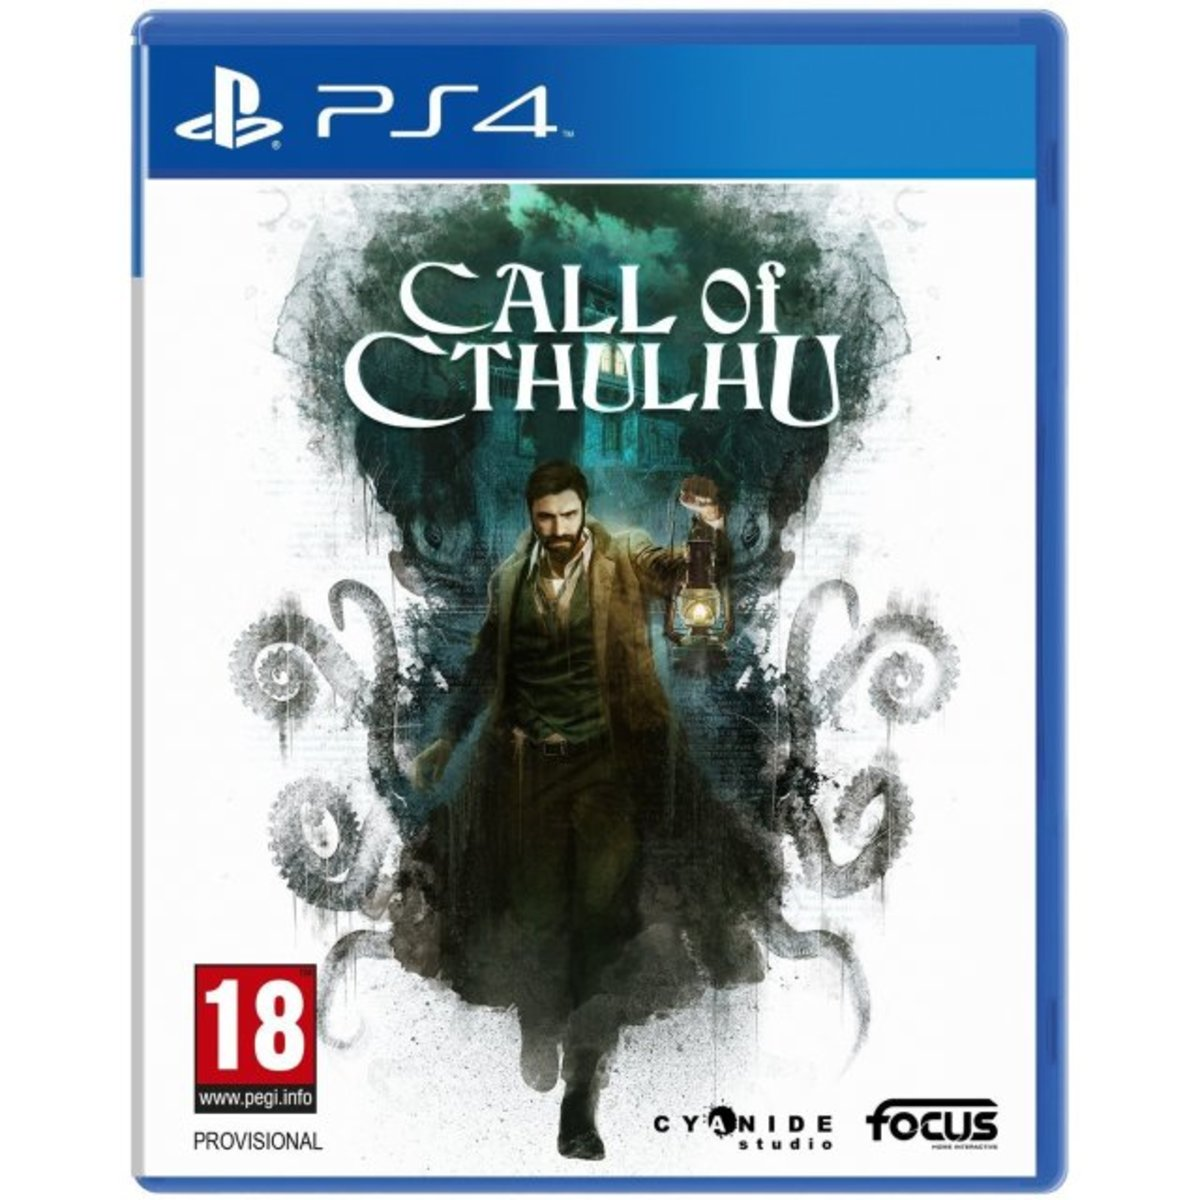 PS4 Game - CALL OF CTHULHU: THE OFFICIAL VIDEO GAME